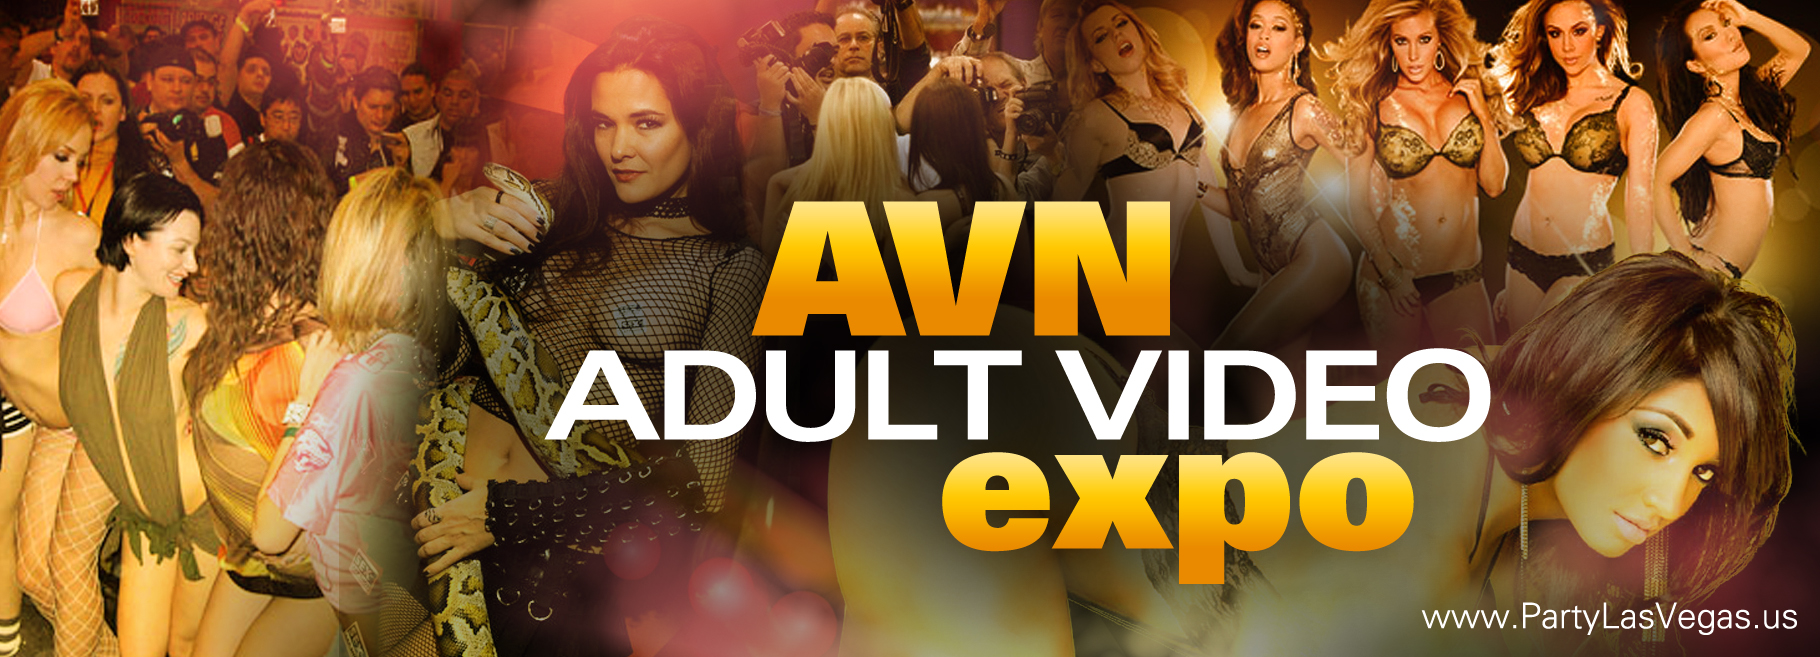 AVN Adult Video Expo - Party Las Vegas